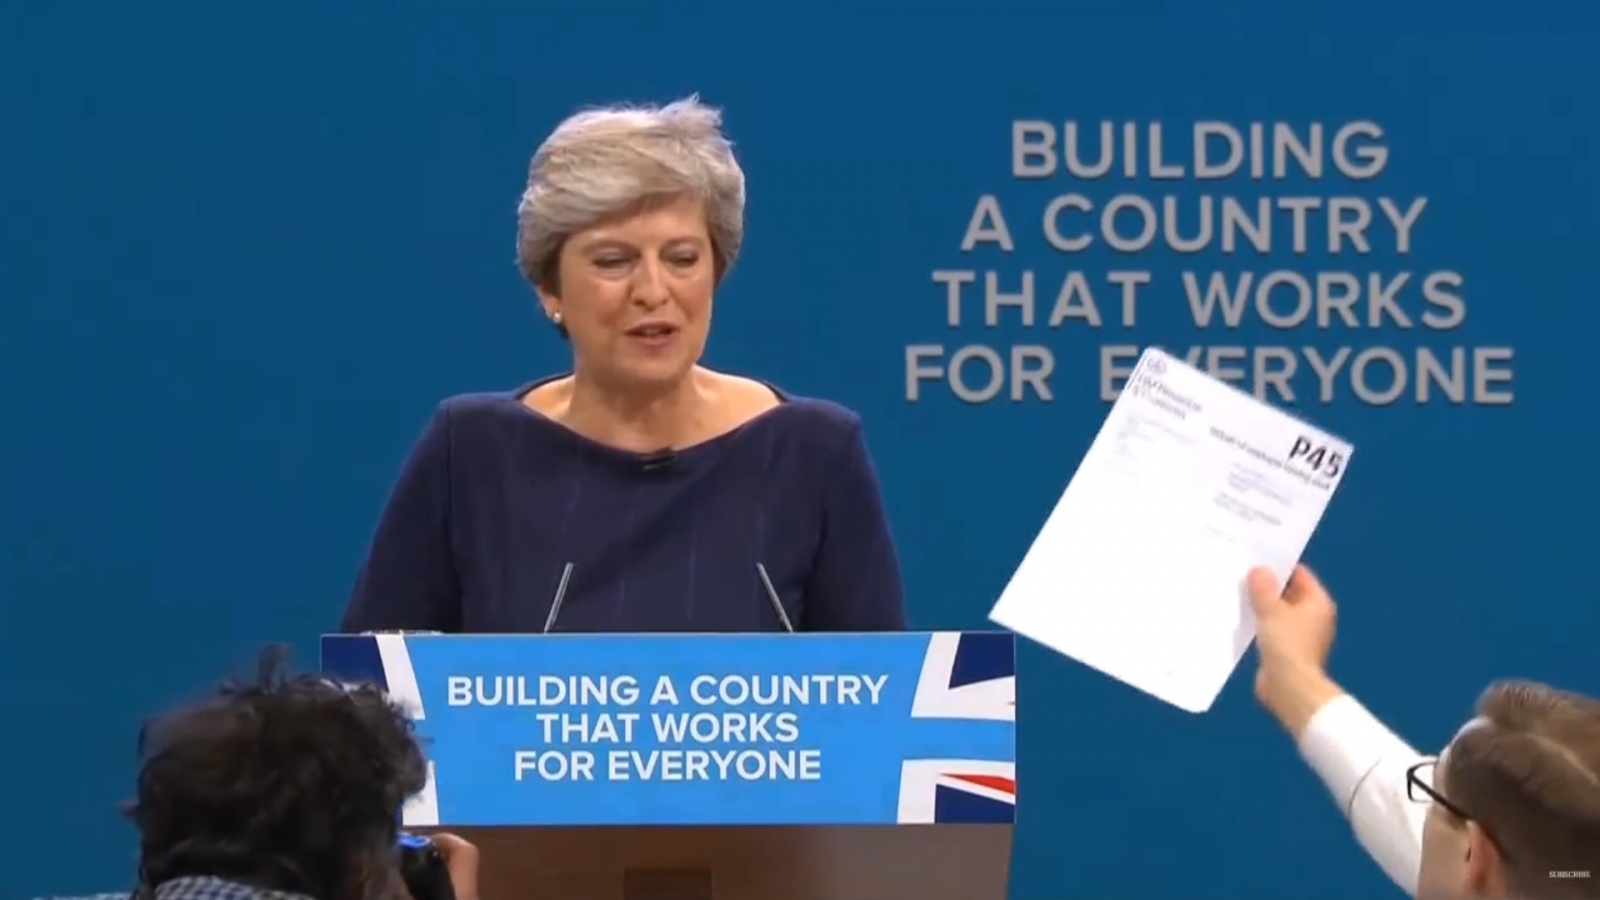 Watch Theresa May Be Given Her P45 By Protester At Conservative Party Conference